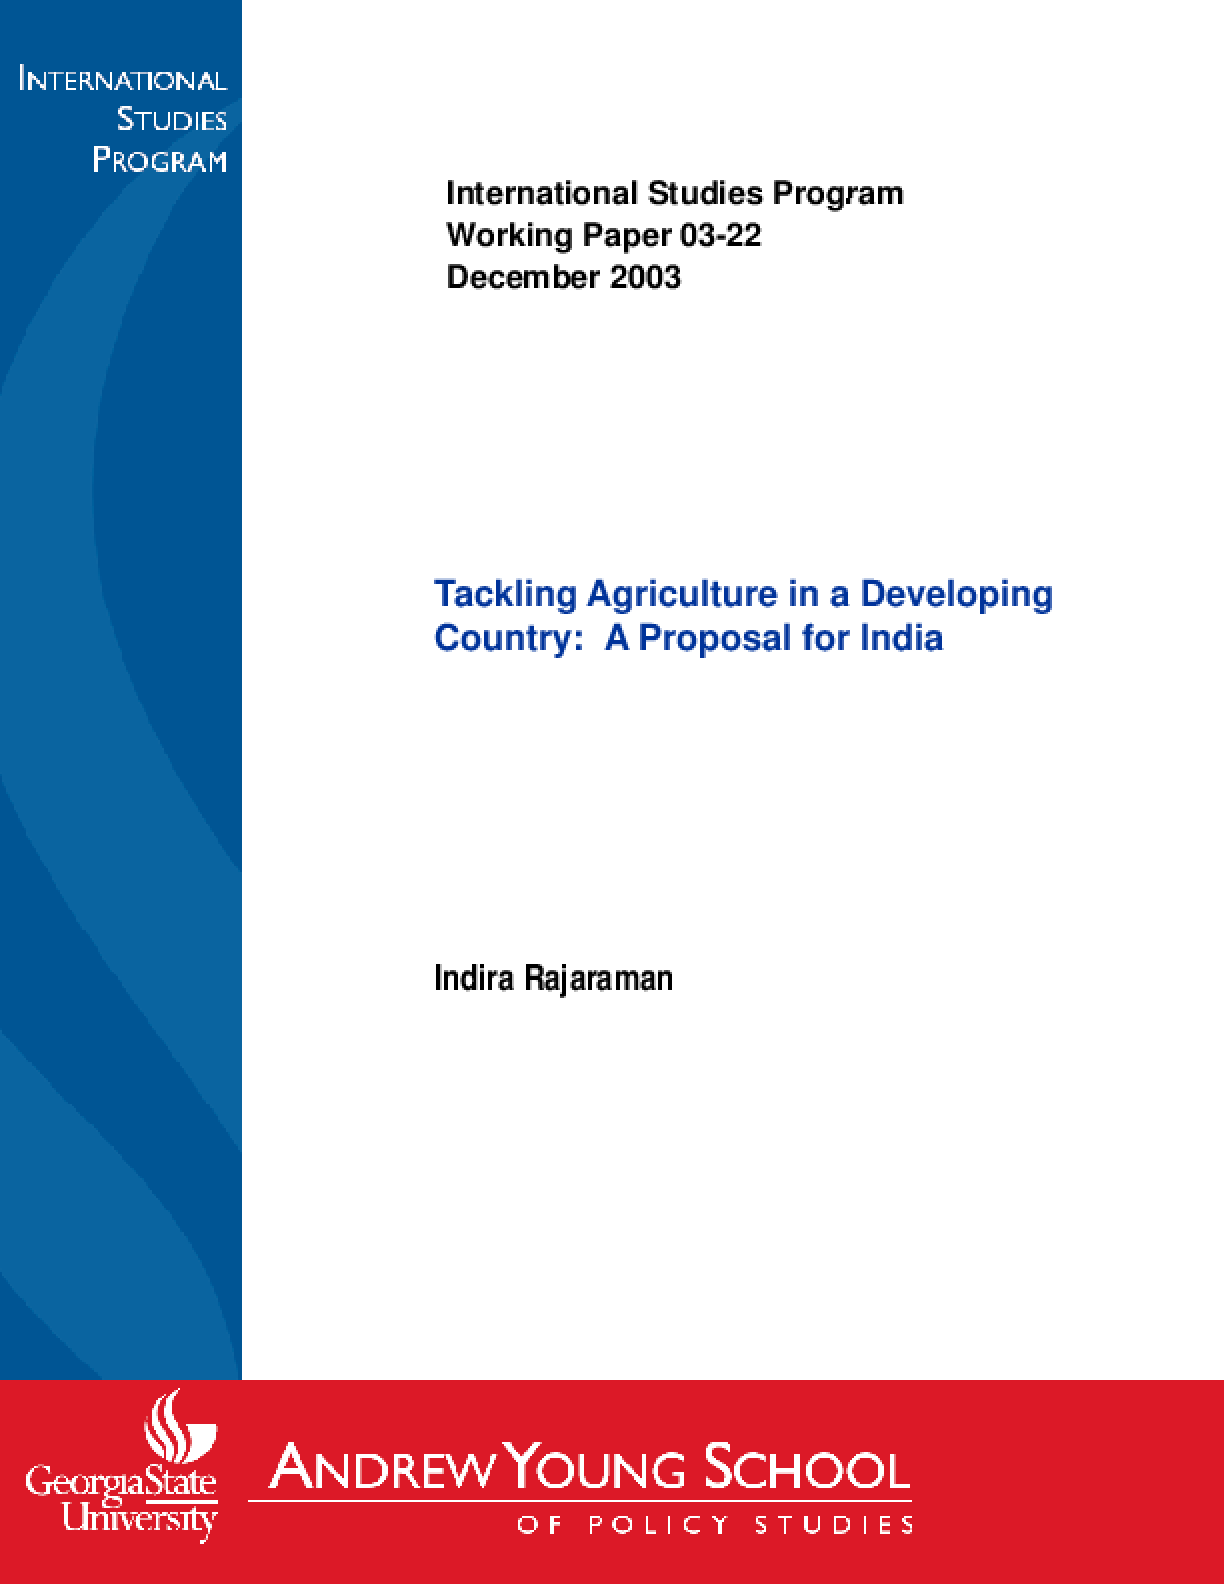 Tackling Agriculture in a Developing Country: a Proposal for India